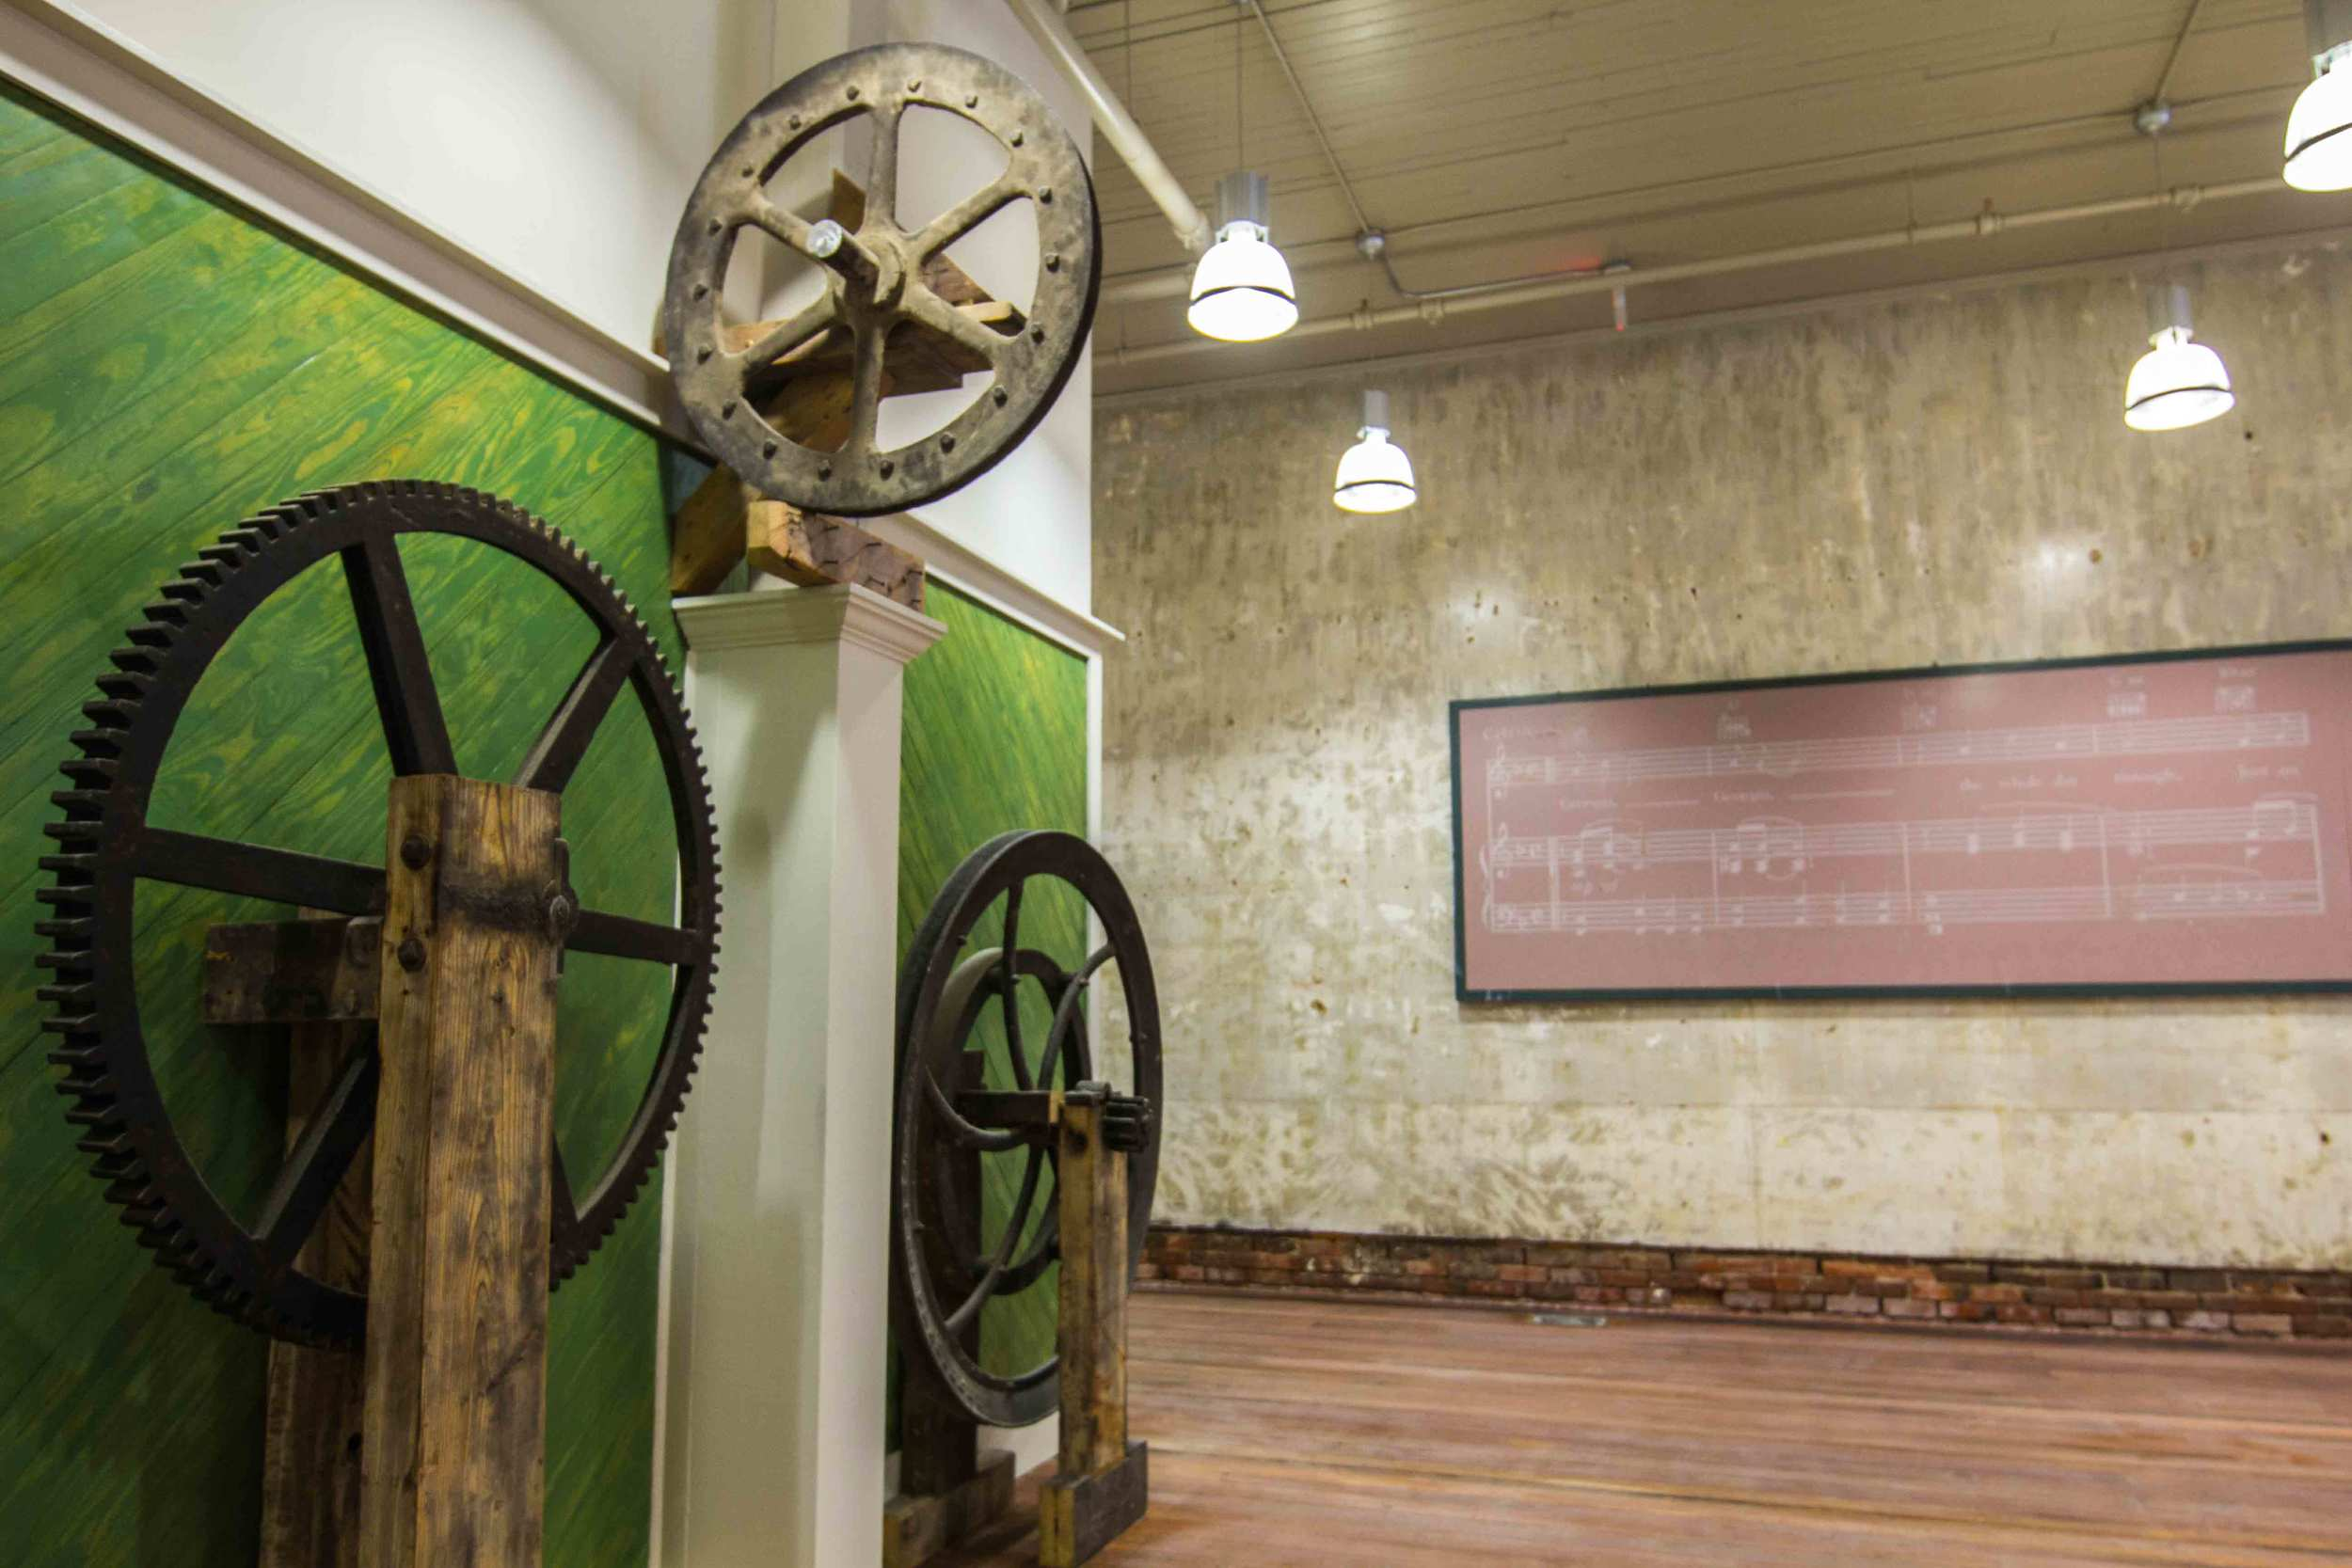 Historic gears in the lobby